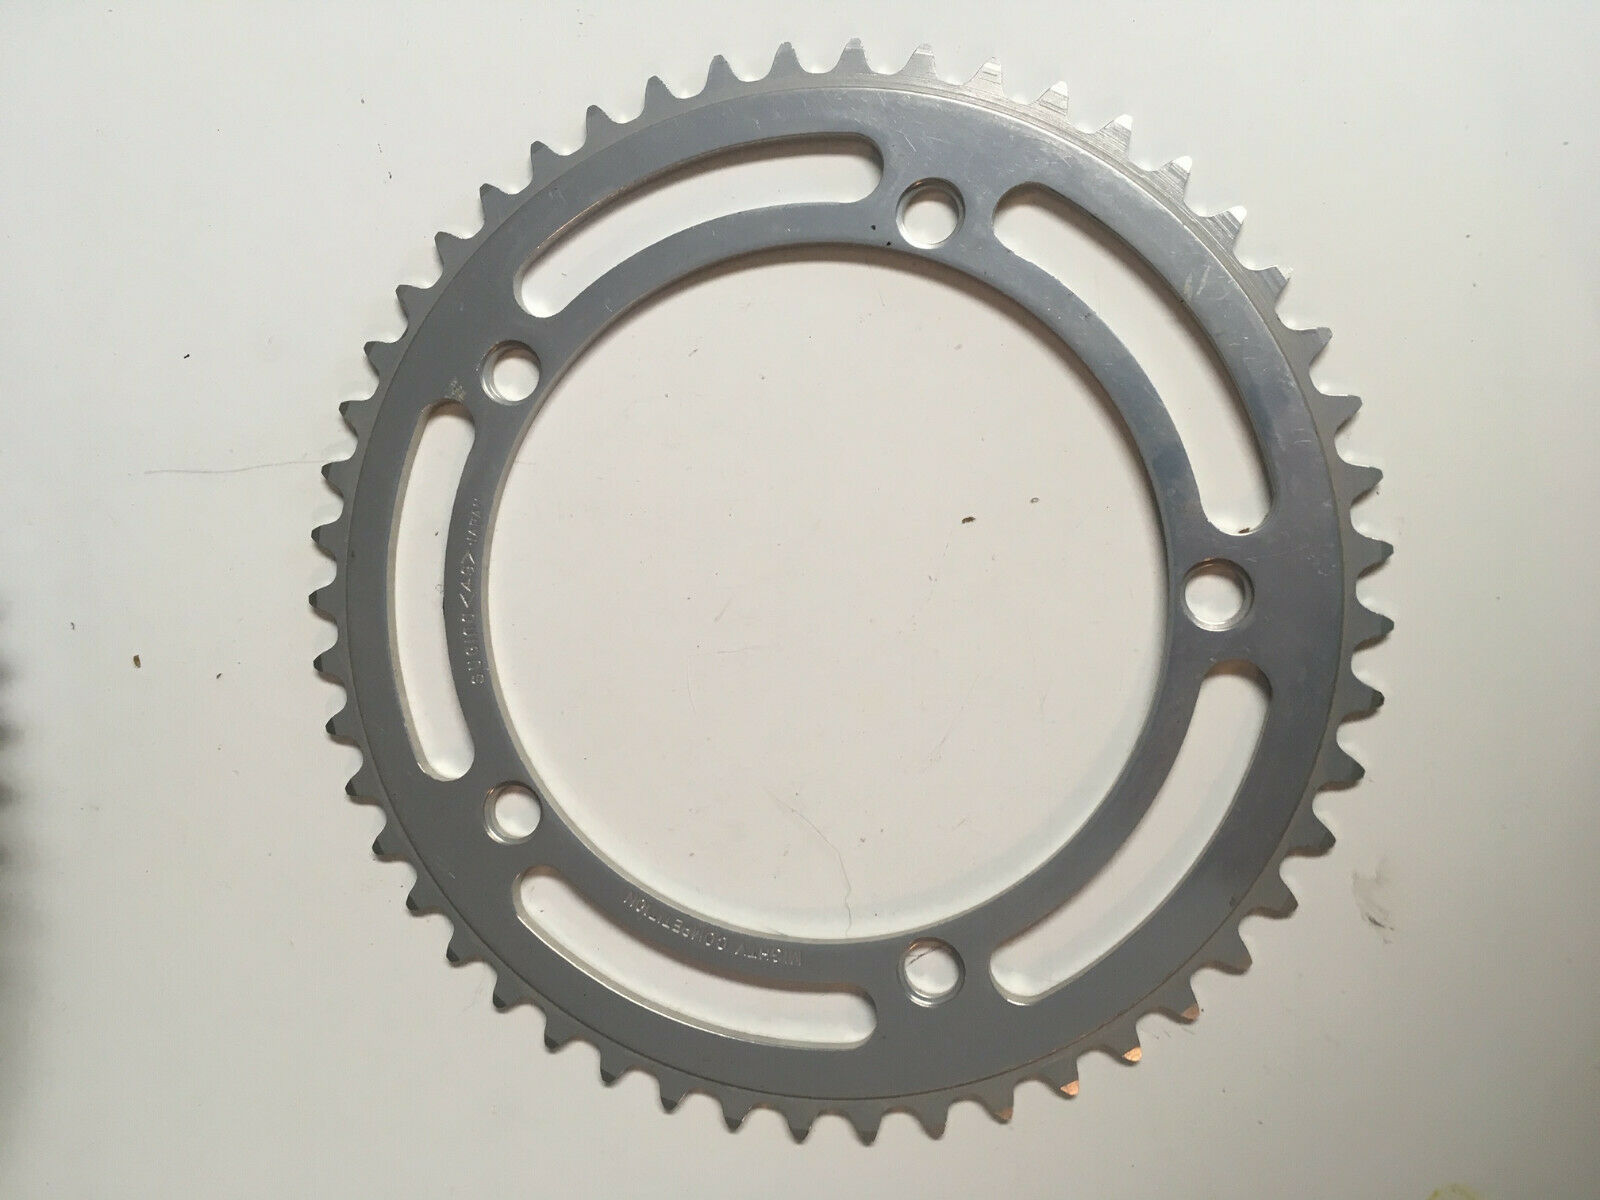 Sugino Mighty Competition 49 Tooth 144BCD Chainring 49t